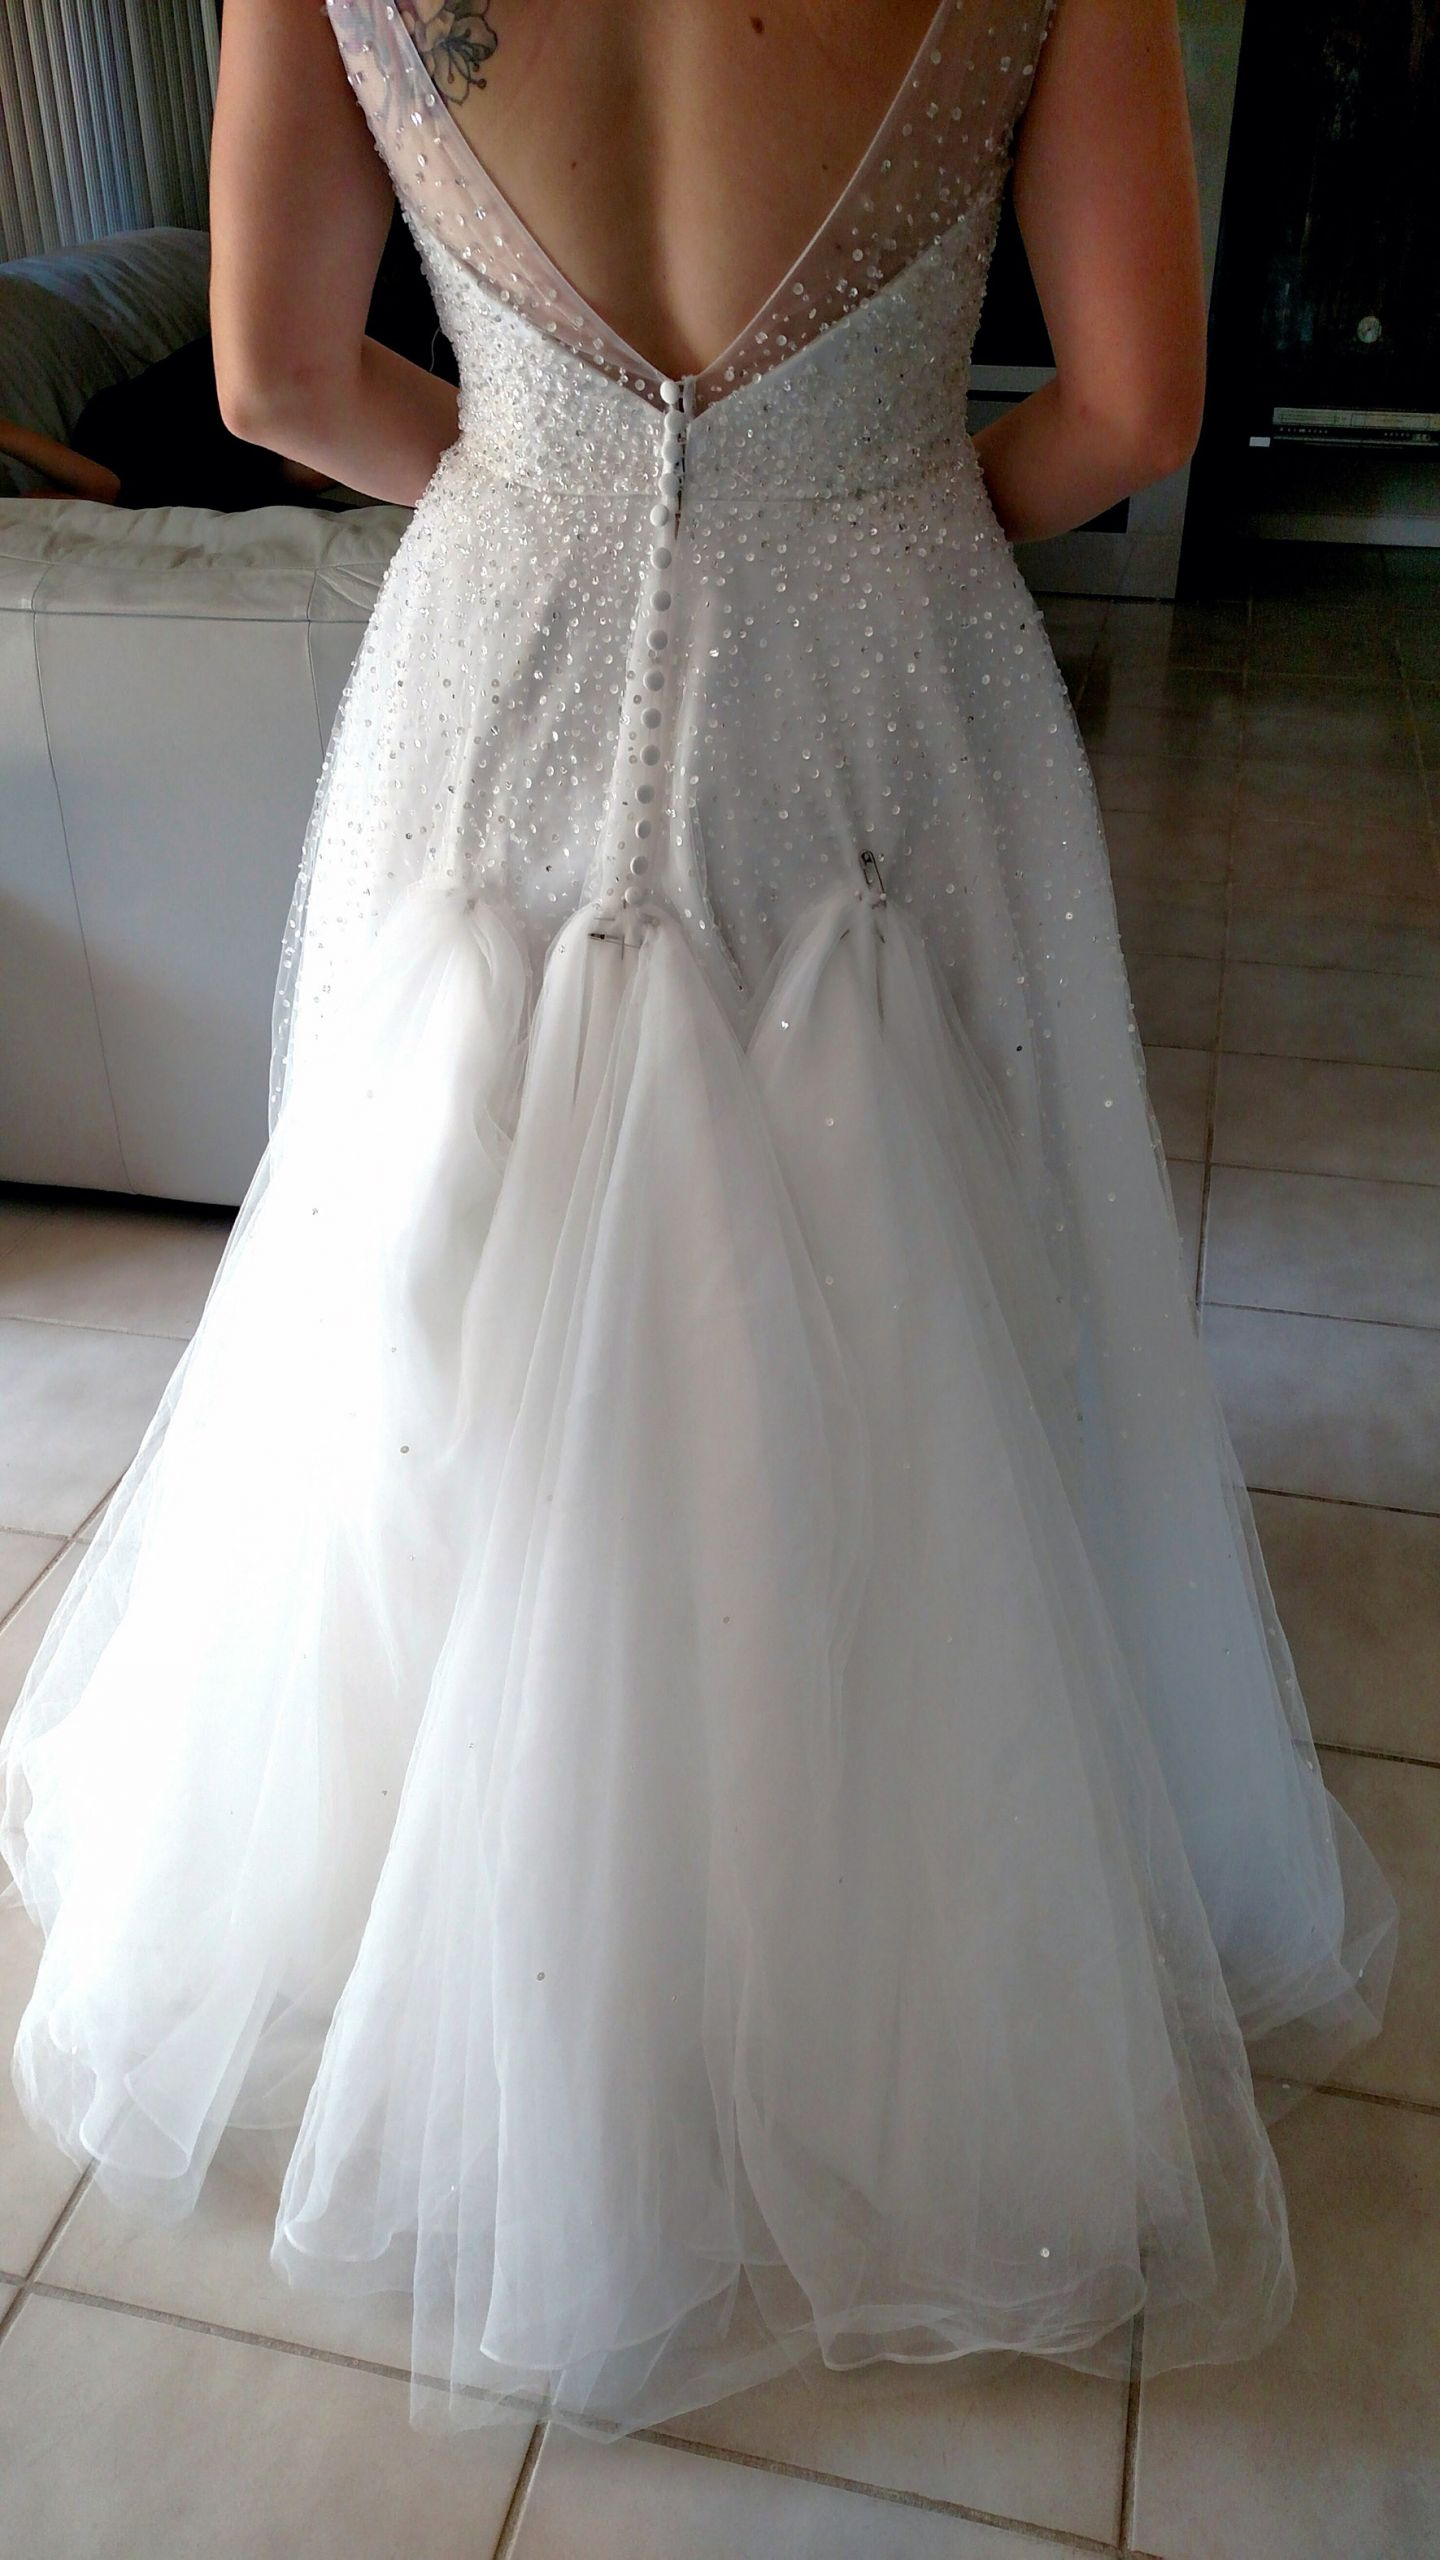 Wedding Gown Bustle  Bustle on tulle dress Show me yours